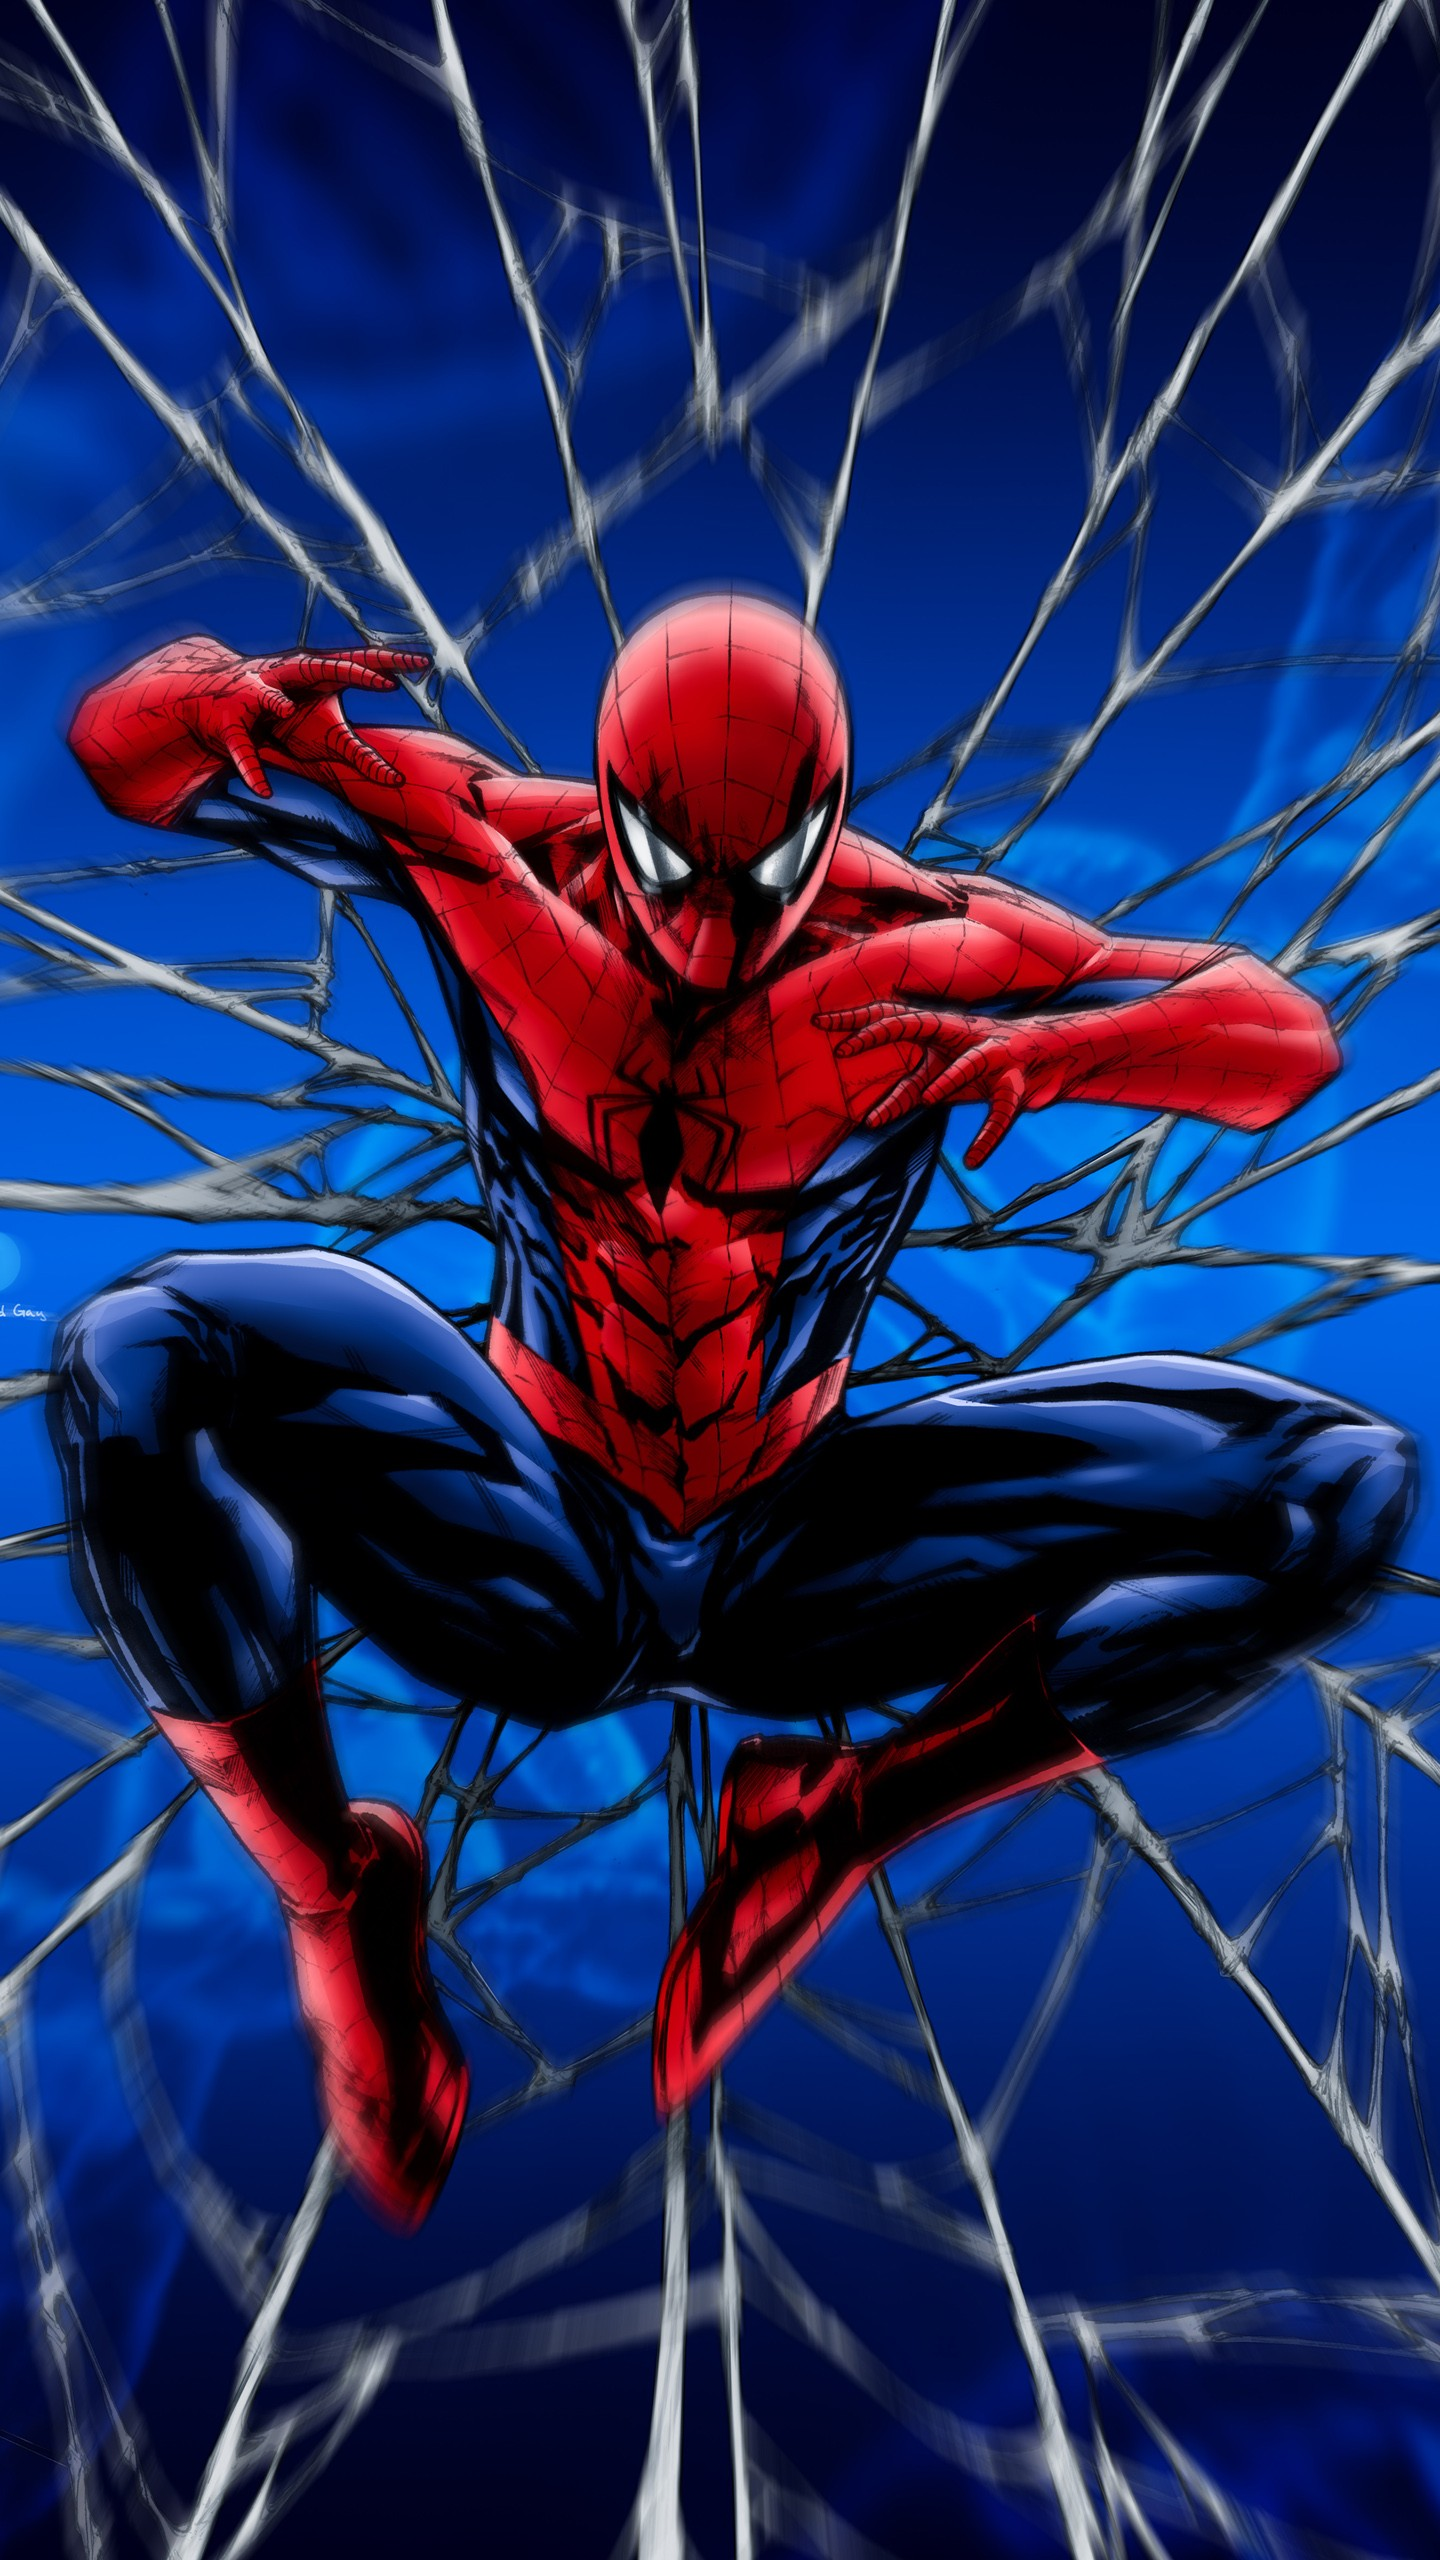 Spider-Man 4K Wallpapers | HD Wallpapers | ID #28370